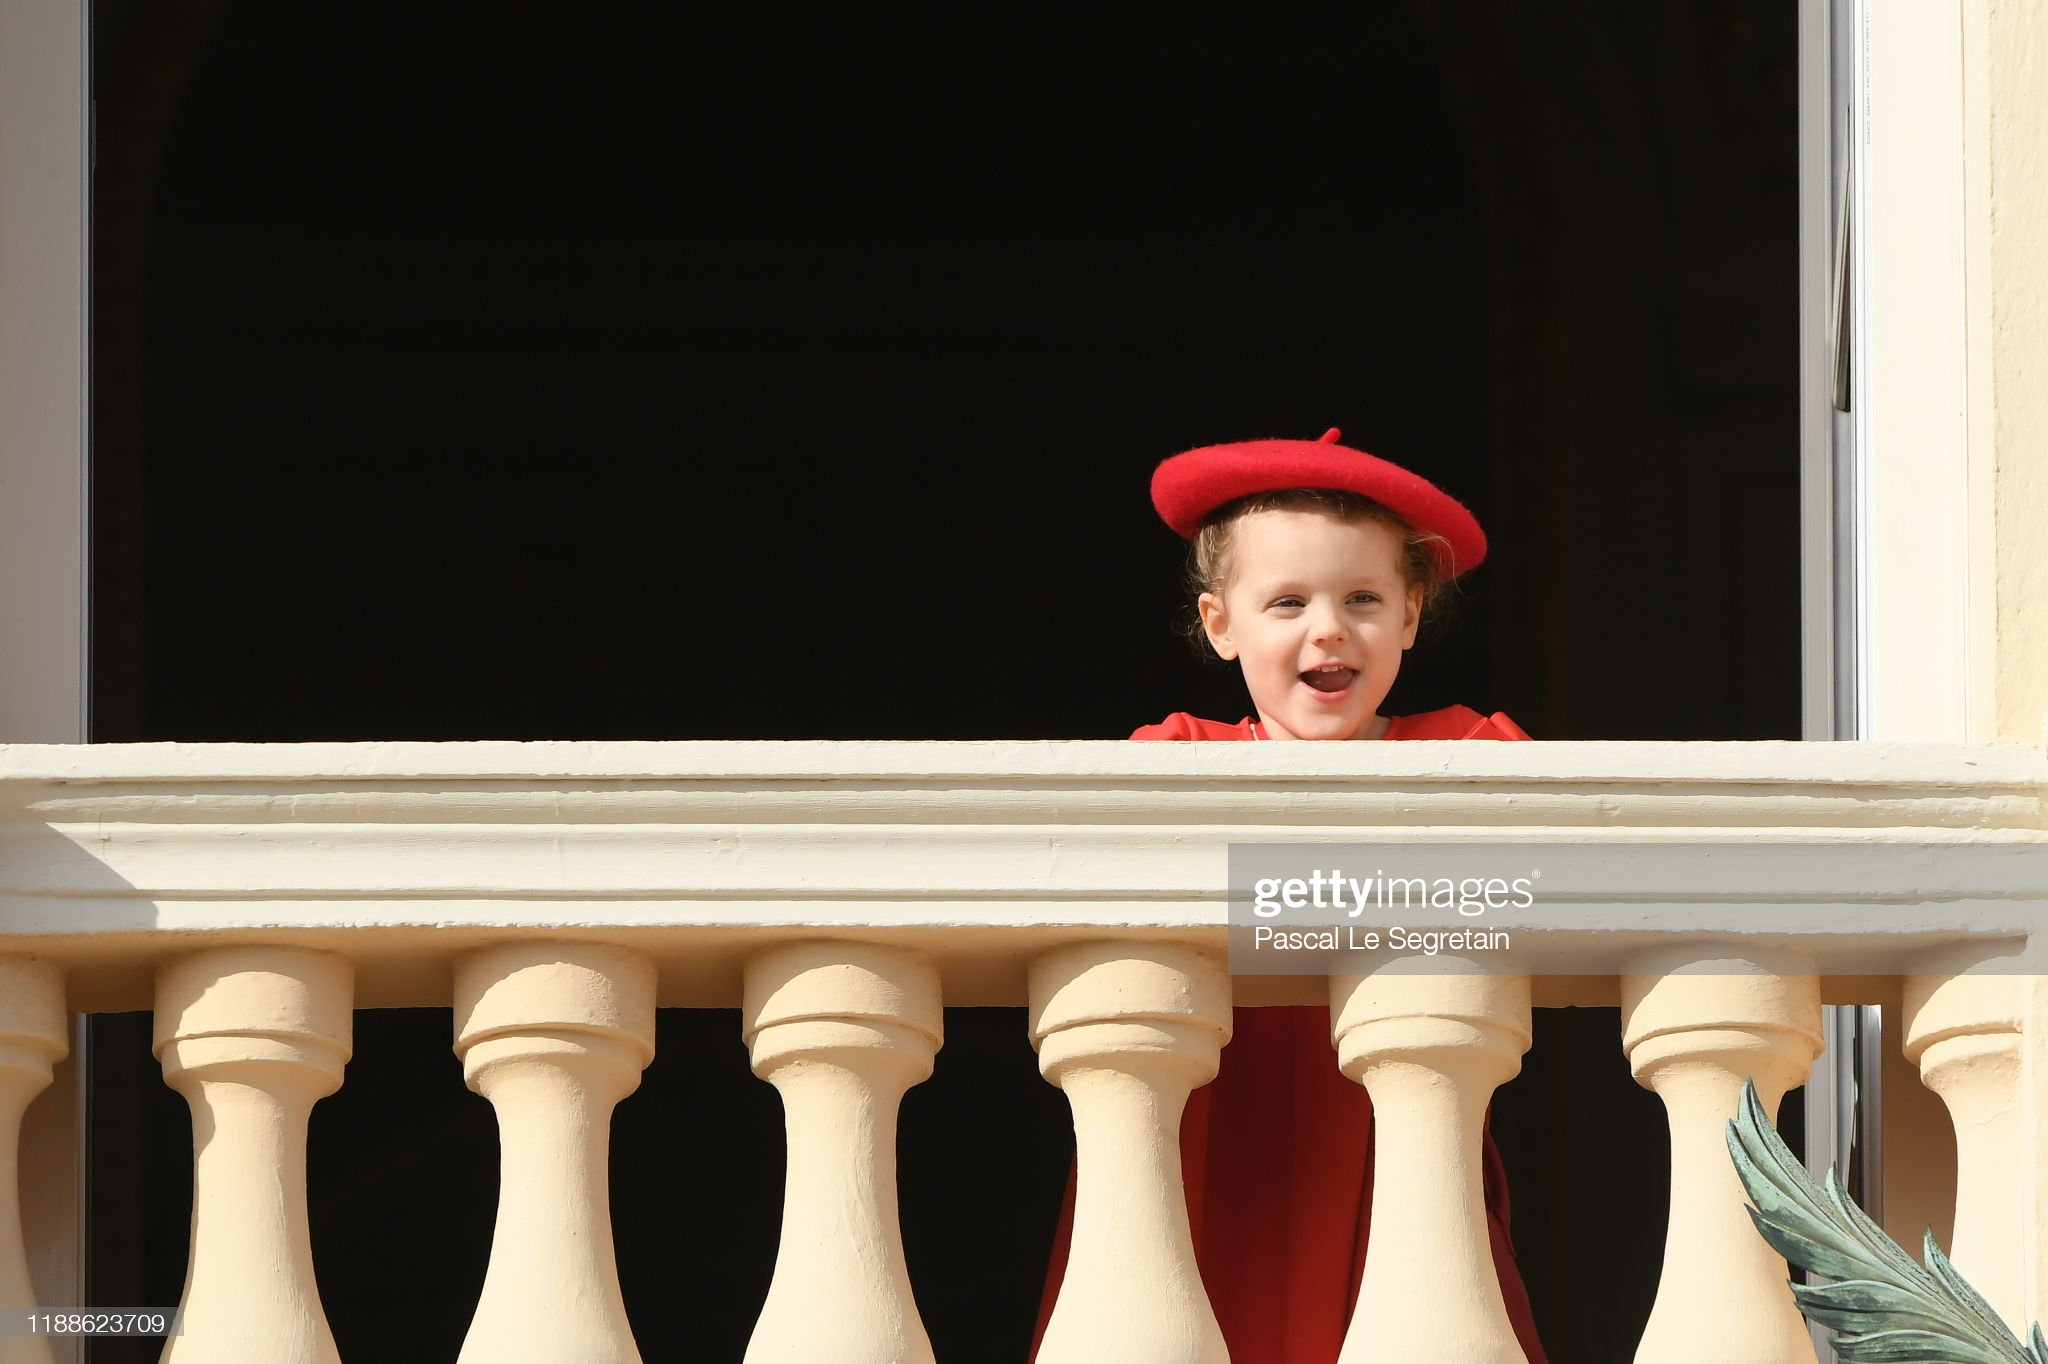 princess-gabriella-of-monaco-pose-at-the-palace-balcony-during-the-picture-id1188623709